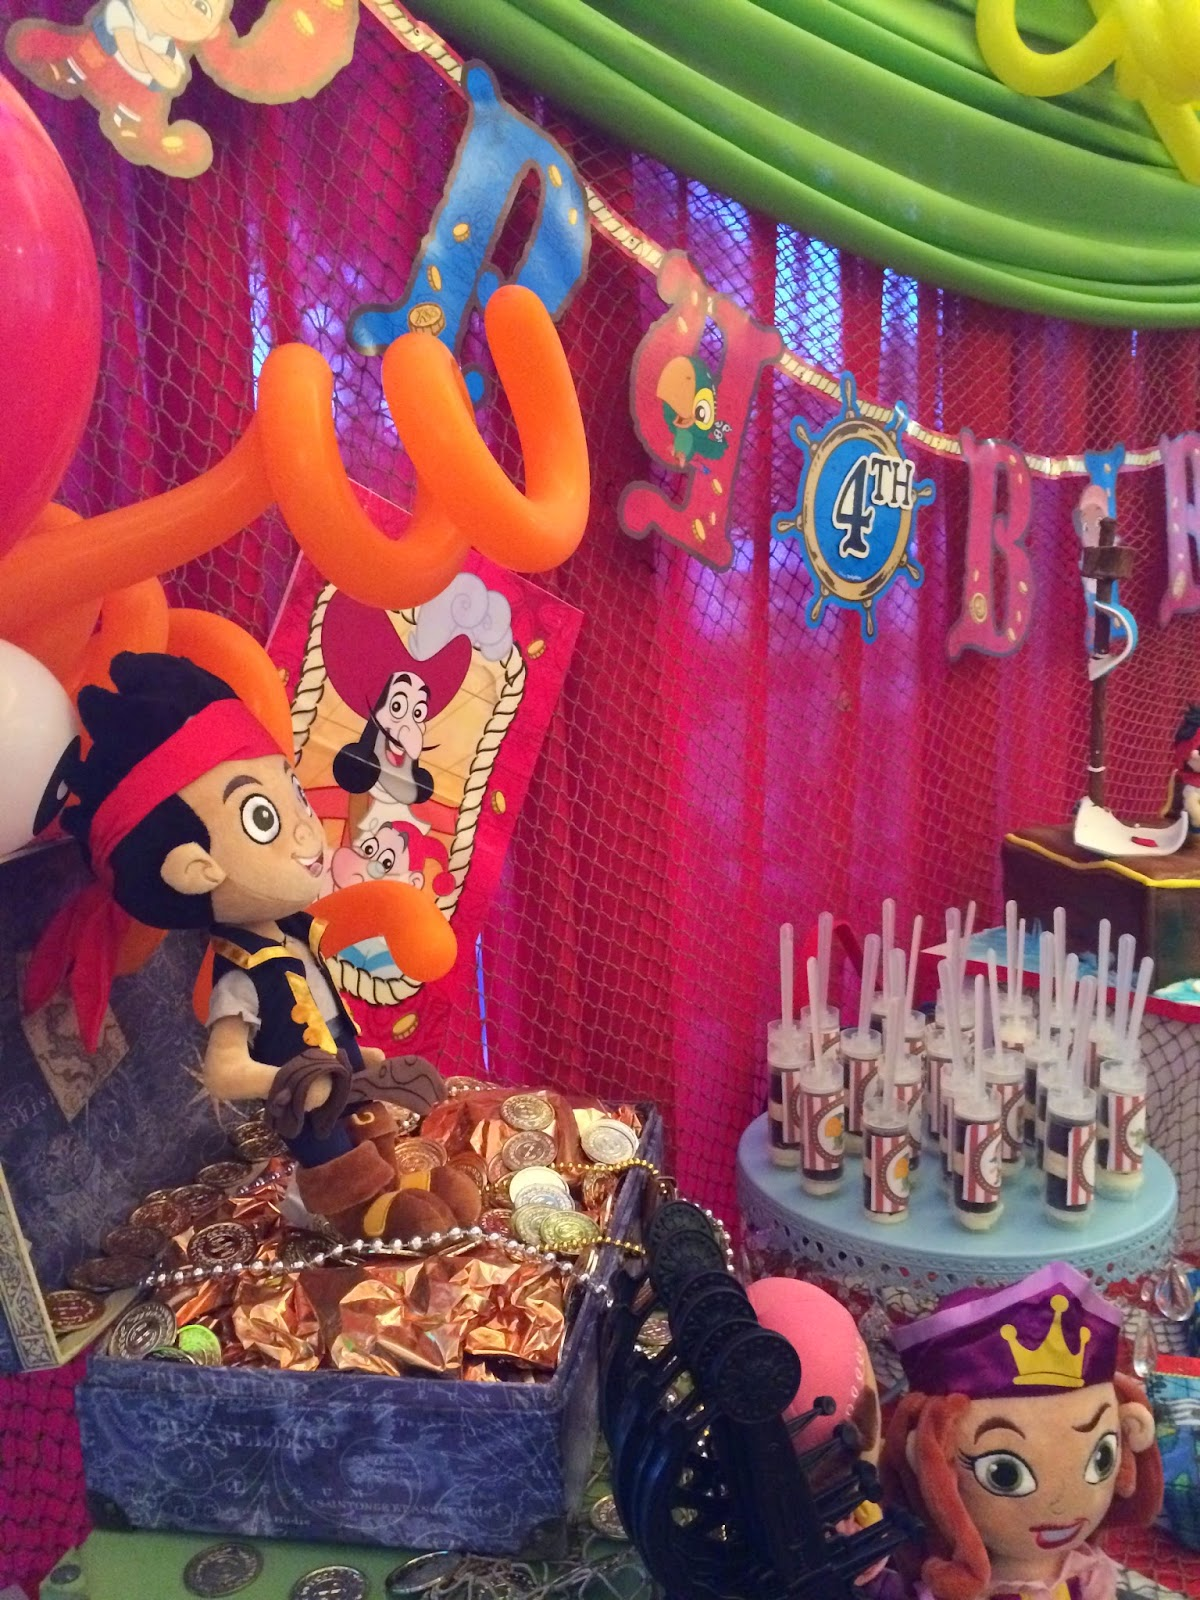 Disney Jake and the Never Land Pirates cake table